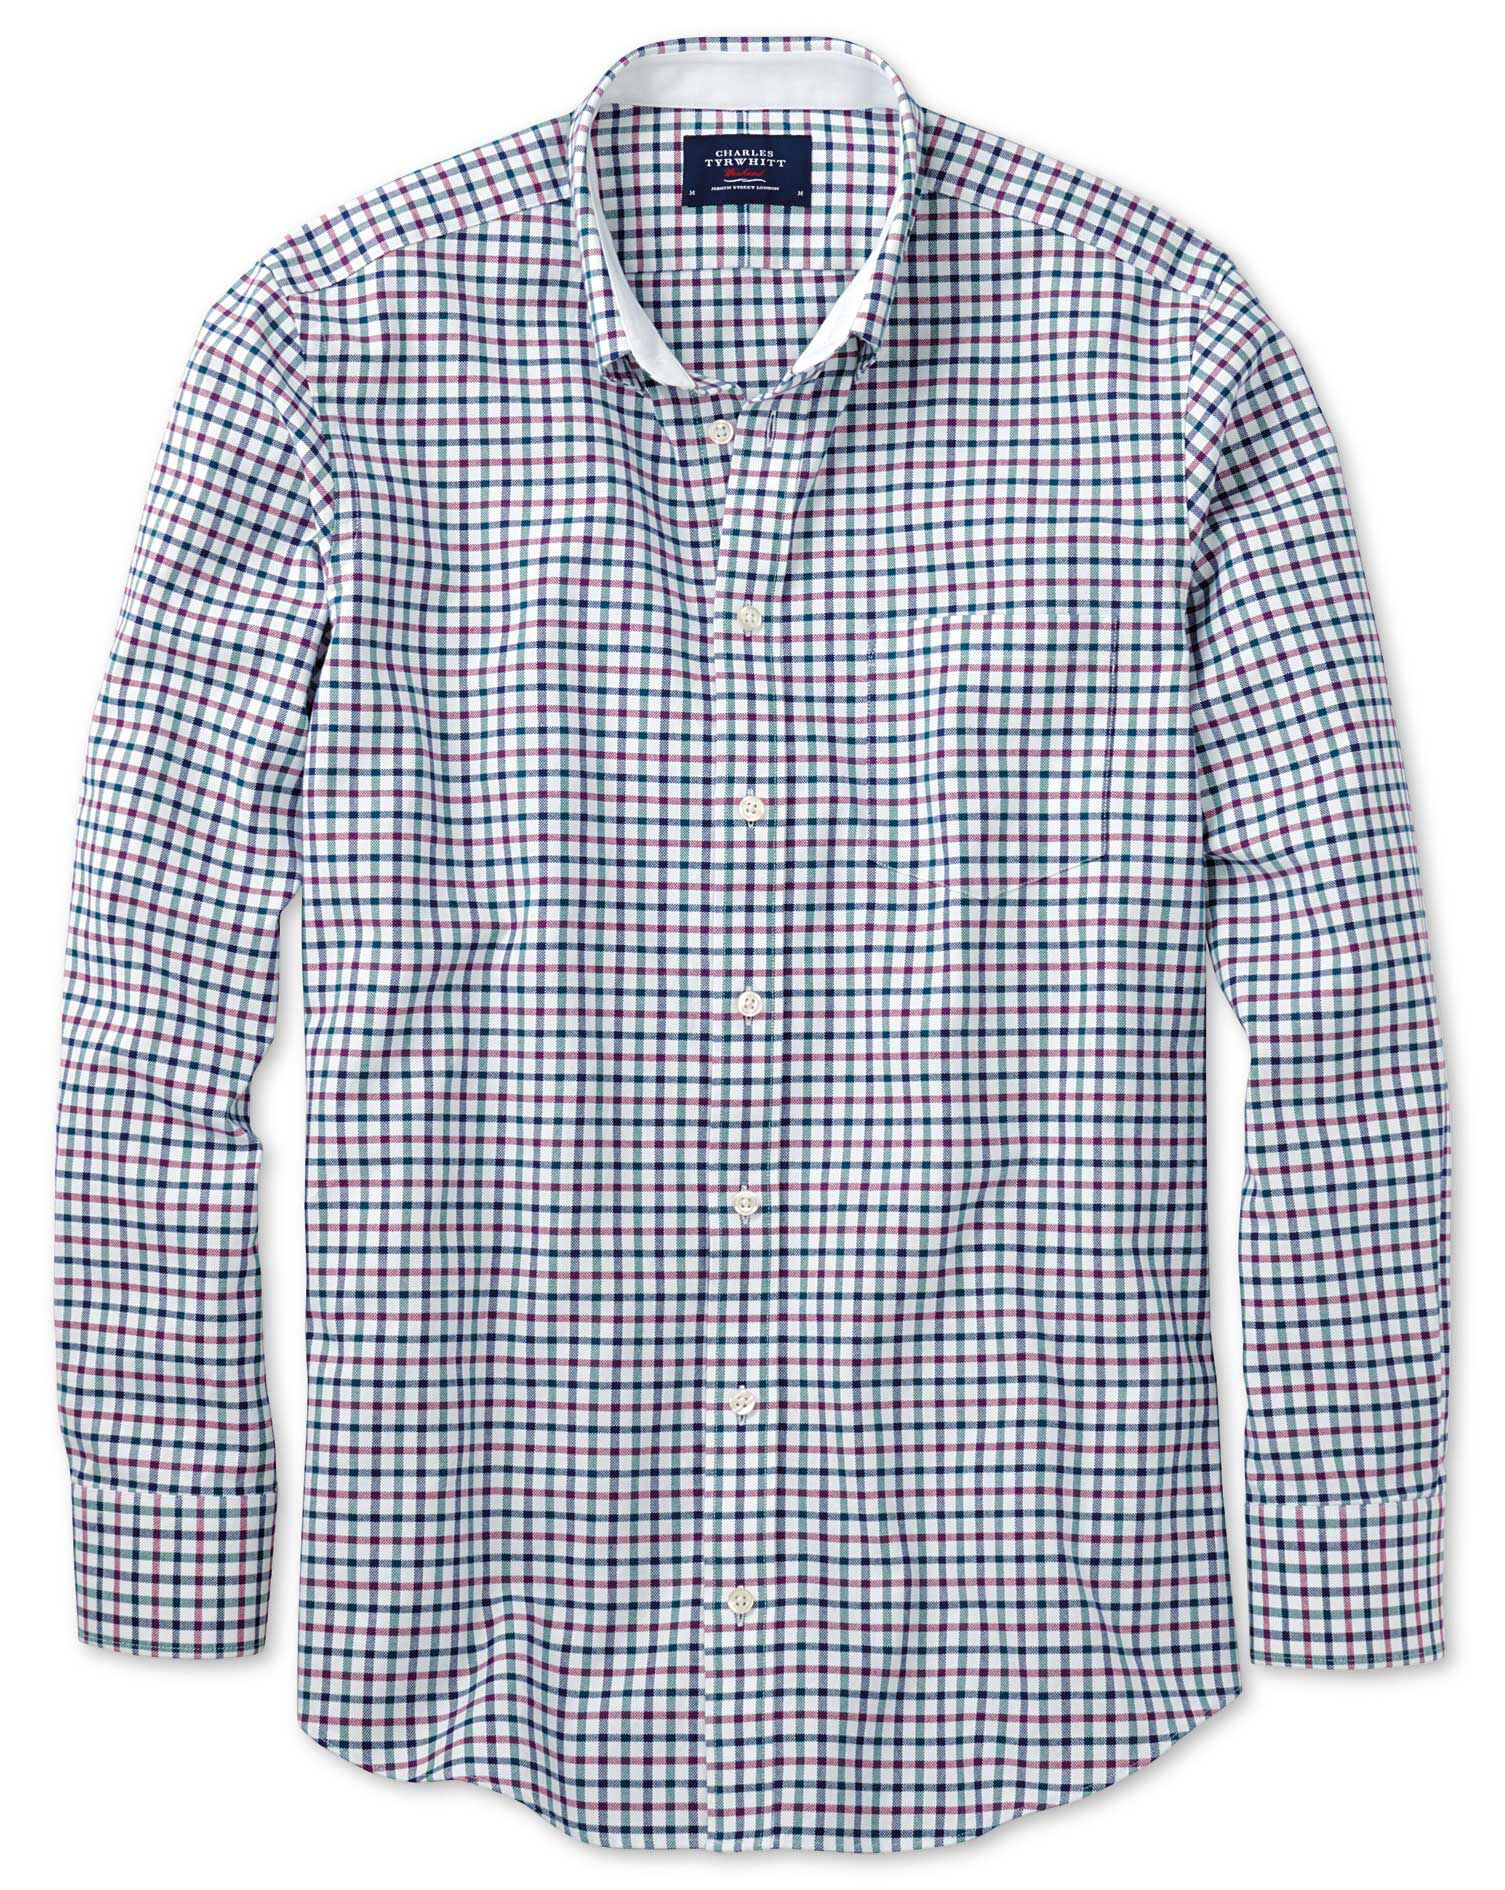 Classic Fit Navy and Berry Check Washed Oxford Cotton Shirt Single Cuff Size XXL by Charles Tyrwhitt